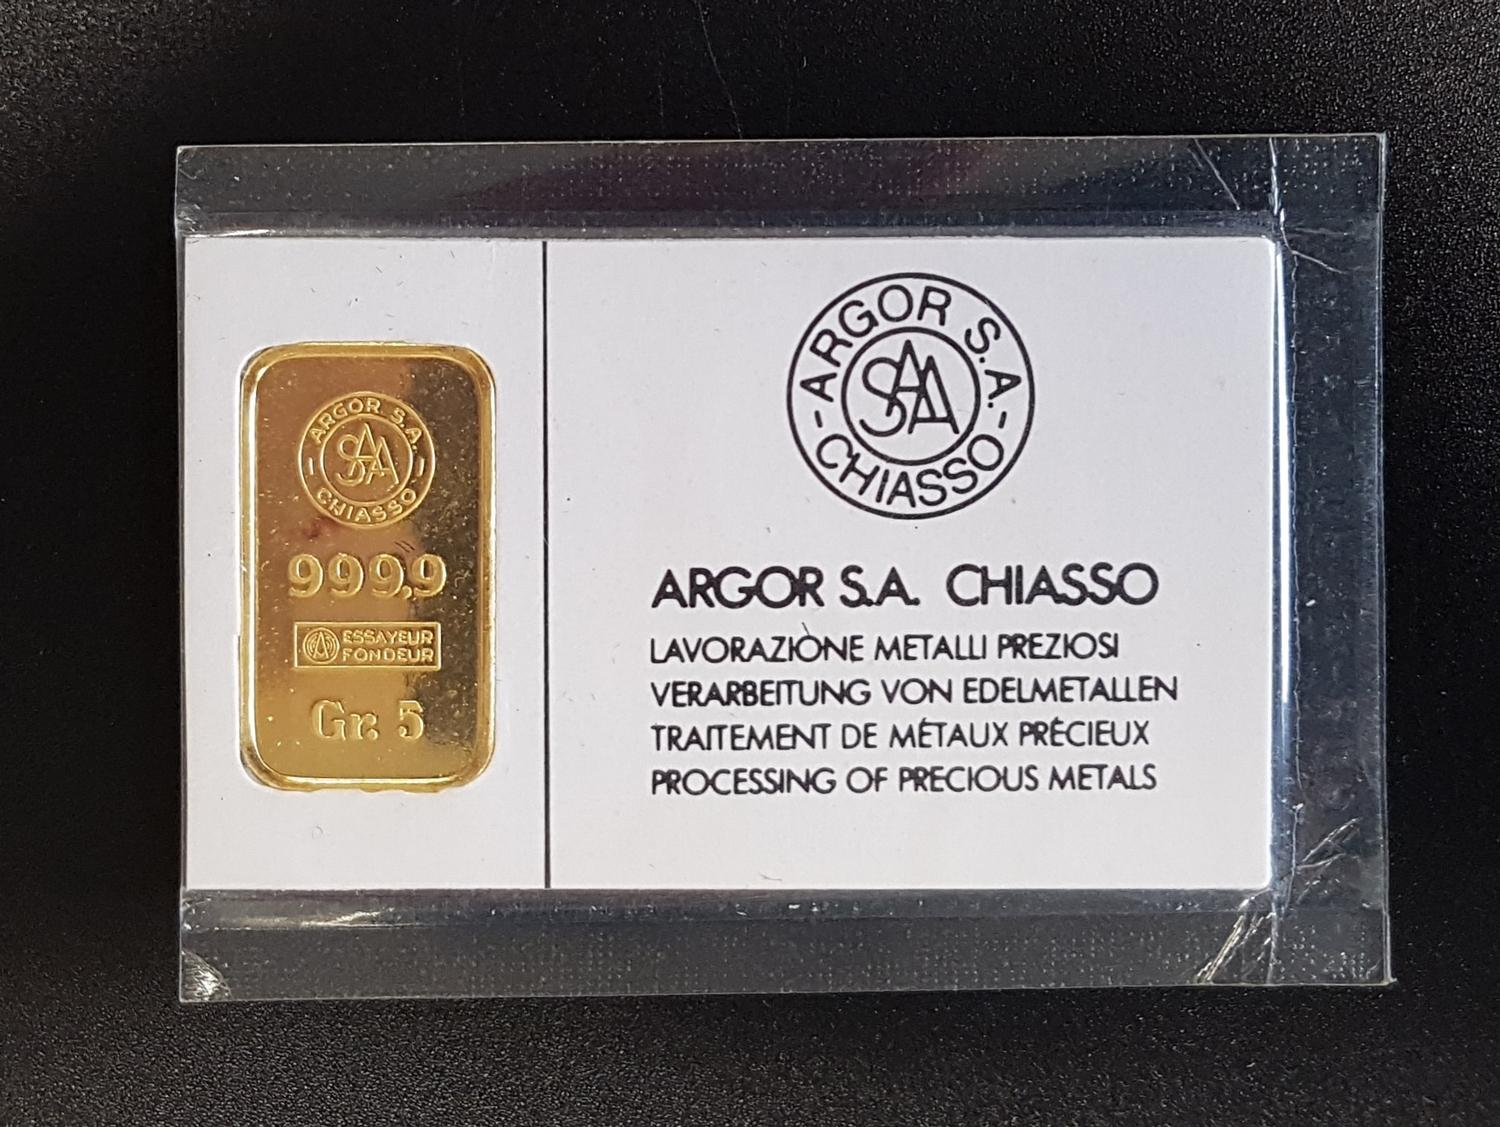 Lot 21 - ARGO S.A. CHIASSO FINE GOLD 999.9 INGOT 5 grams